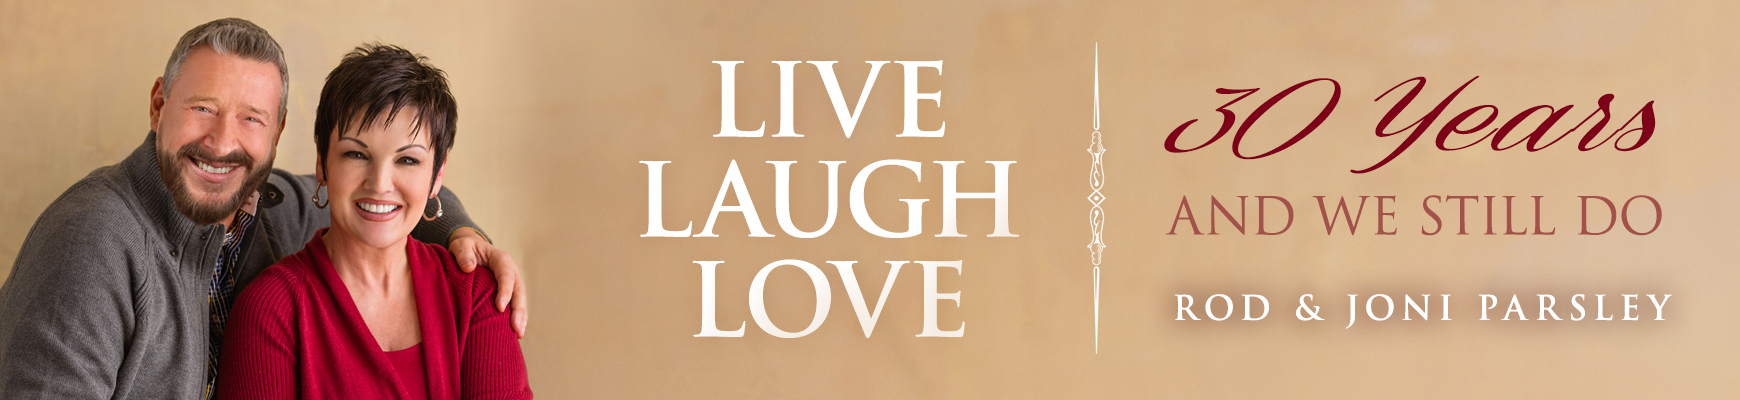 Live Laugh Love - 30 Years and we still do | Rod and Joni Parsley